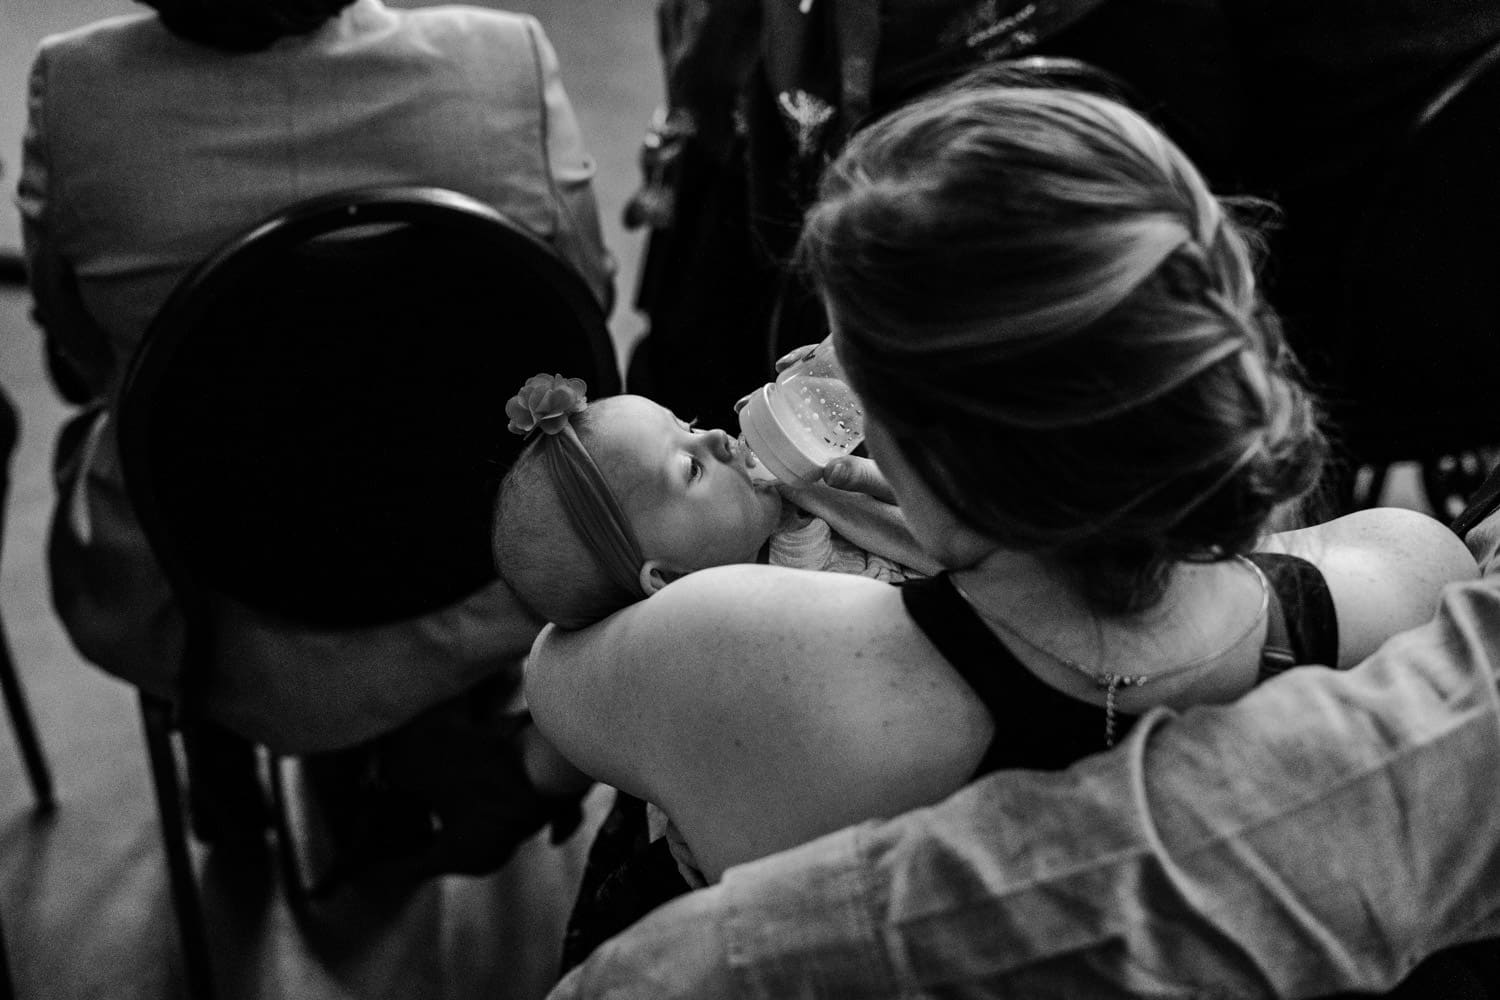 guests feeds a baby during wedding ceremony